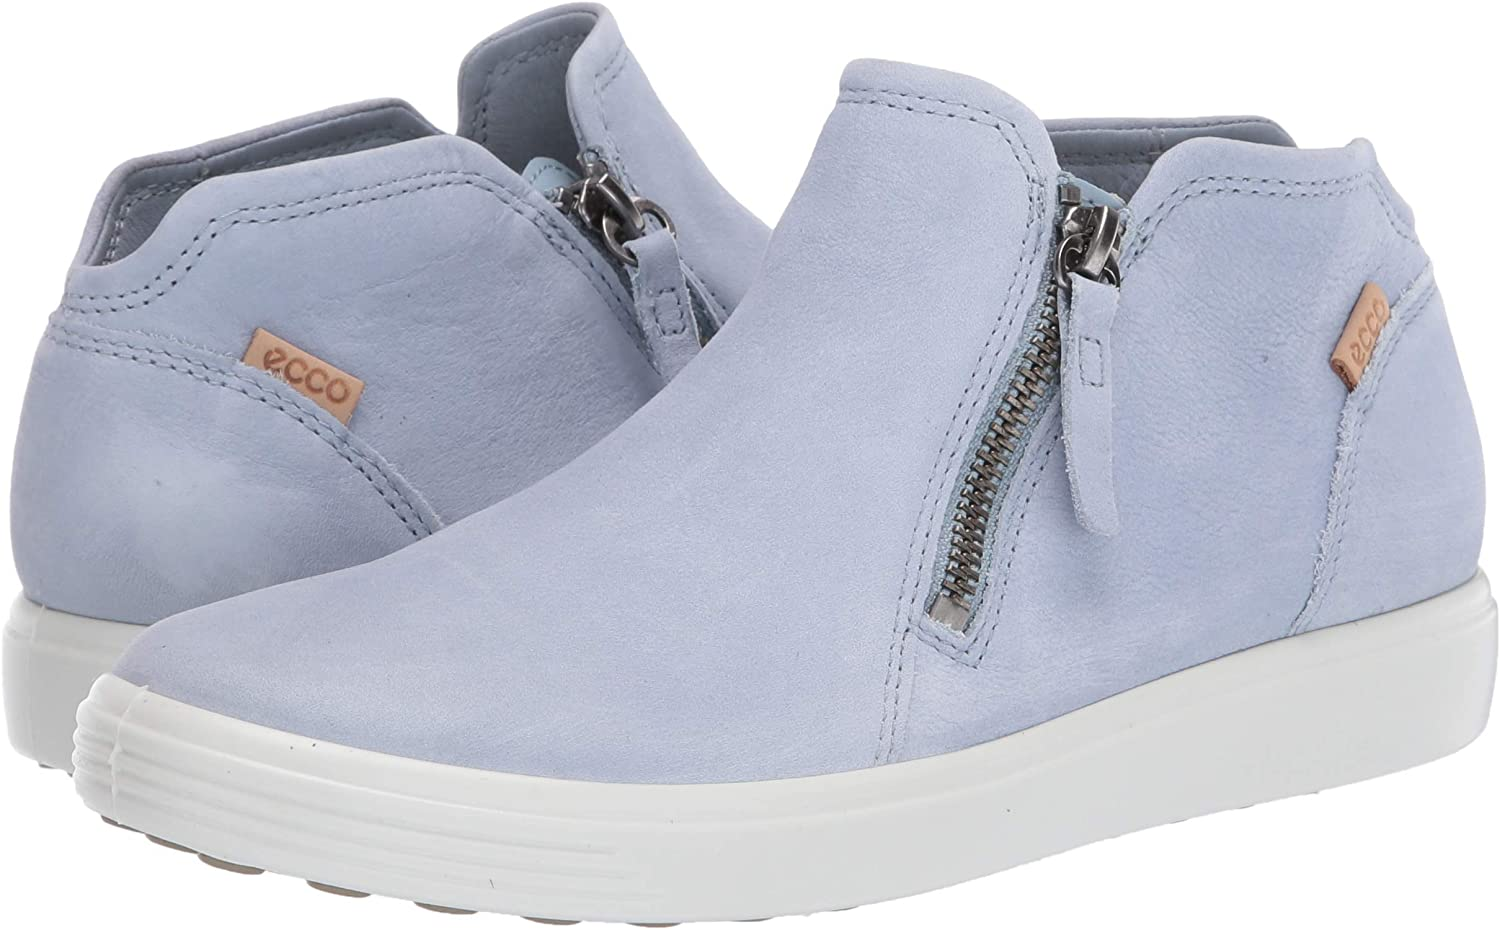 Soft 7 Low Cut Bootie Fashion Sneakers